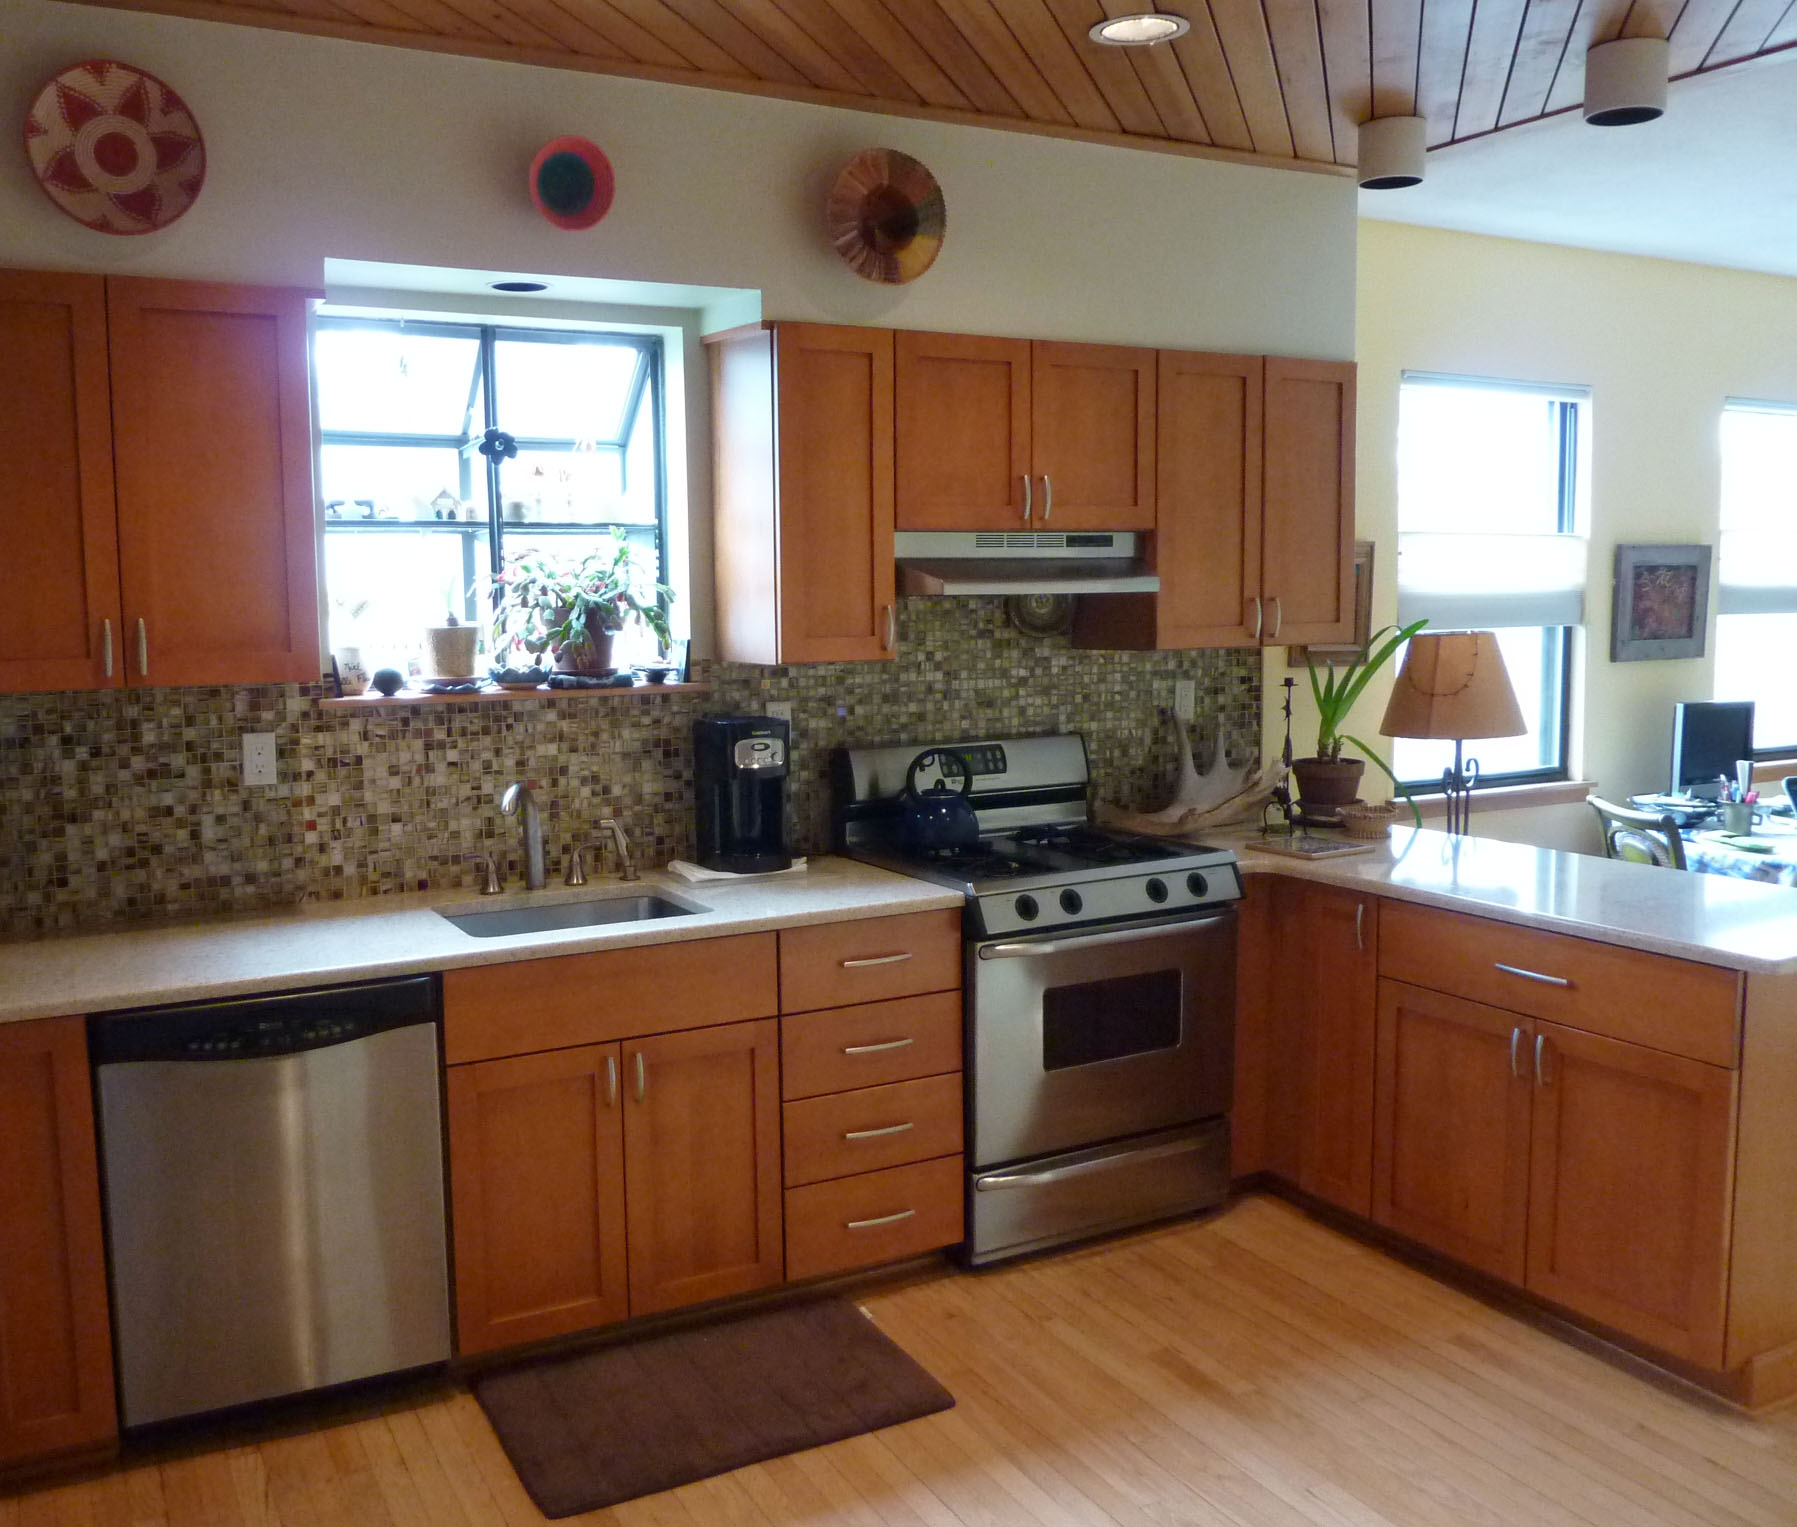 metal kitchen cabinets manufacturers hotels in nyc with kitchens & bath — boston building resources